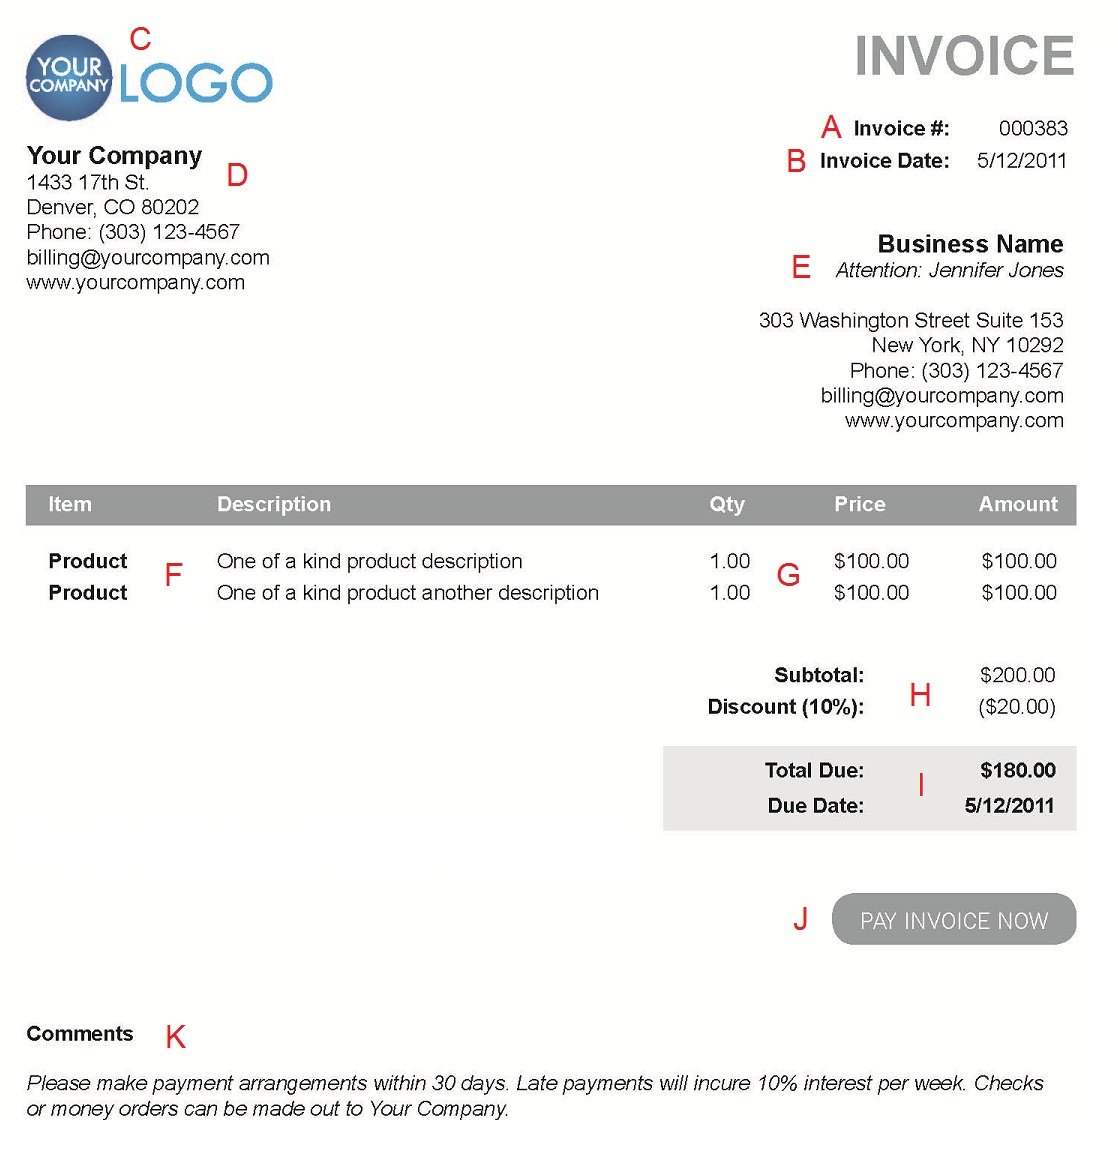 Usdgus  Pleasant The  Different Sections Of An Electronic Payment Invoice With Foxy A  With Cool Billing Invoicing Software Also Hotel Invoice Sample In Addition Invoice Overdue And Best Invoice Software Free As Well As Invoice Database Software Additionally Australia Invoice From Paysimplecom With Usdgus  Foxy The  Different Sections Of An Electronic Payment Invoice With Cool A  And Pleasant Billing Invoicing Software Also Hotel Invoice Sample In Addition Invoice Overdue From Paysimplecom